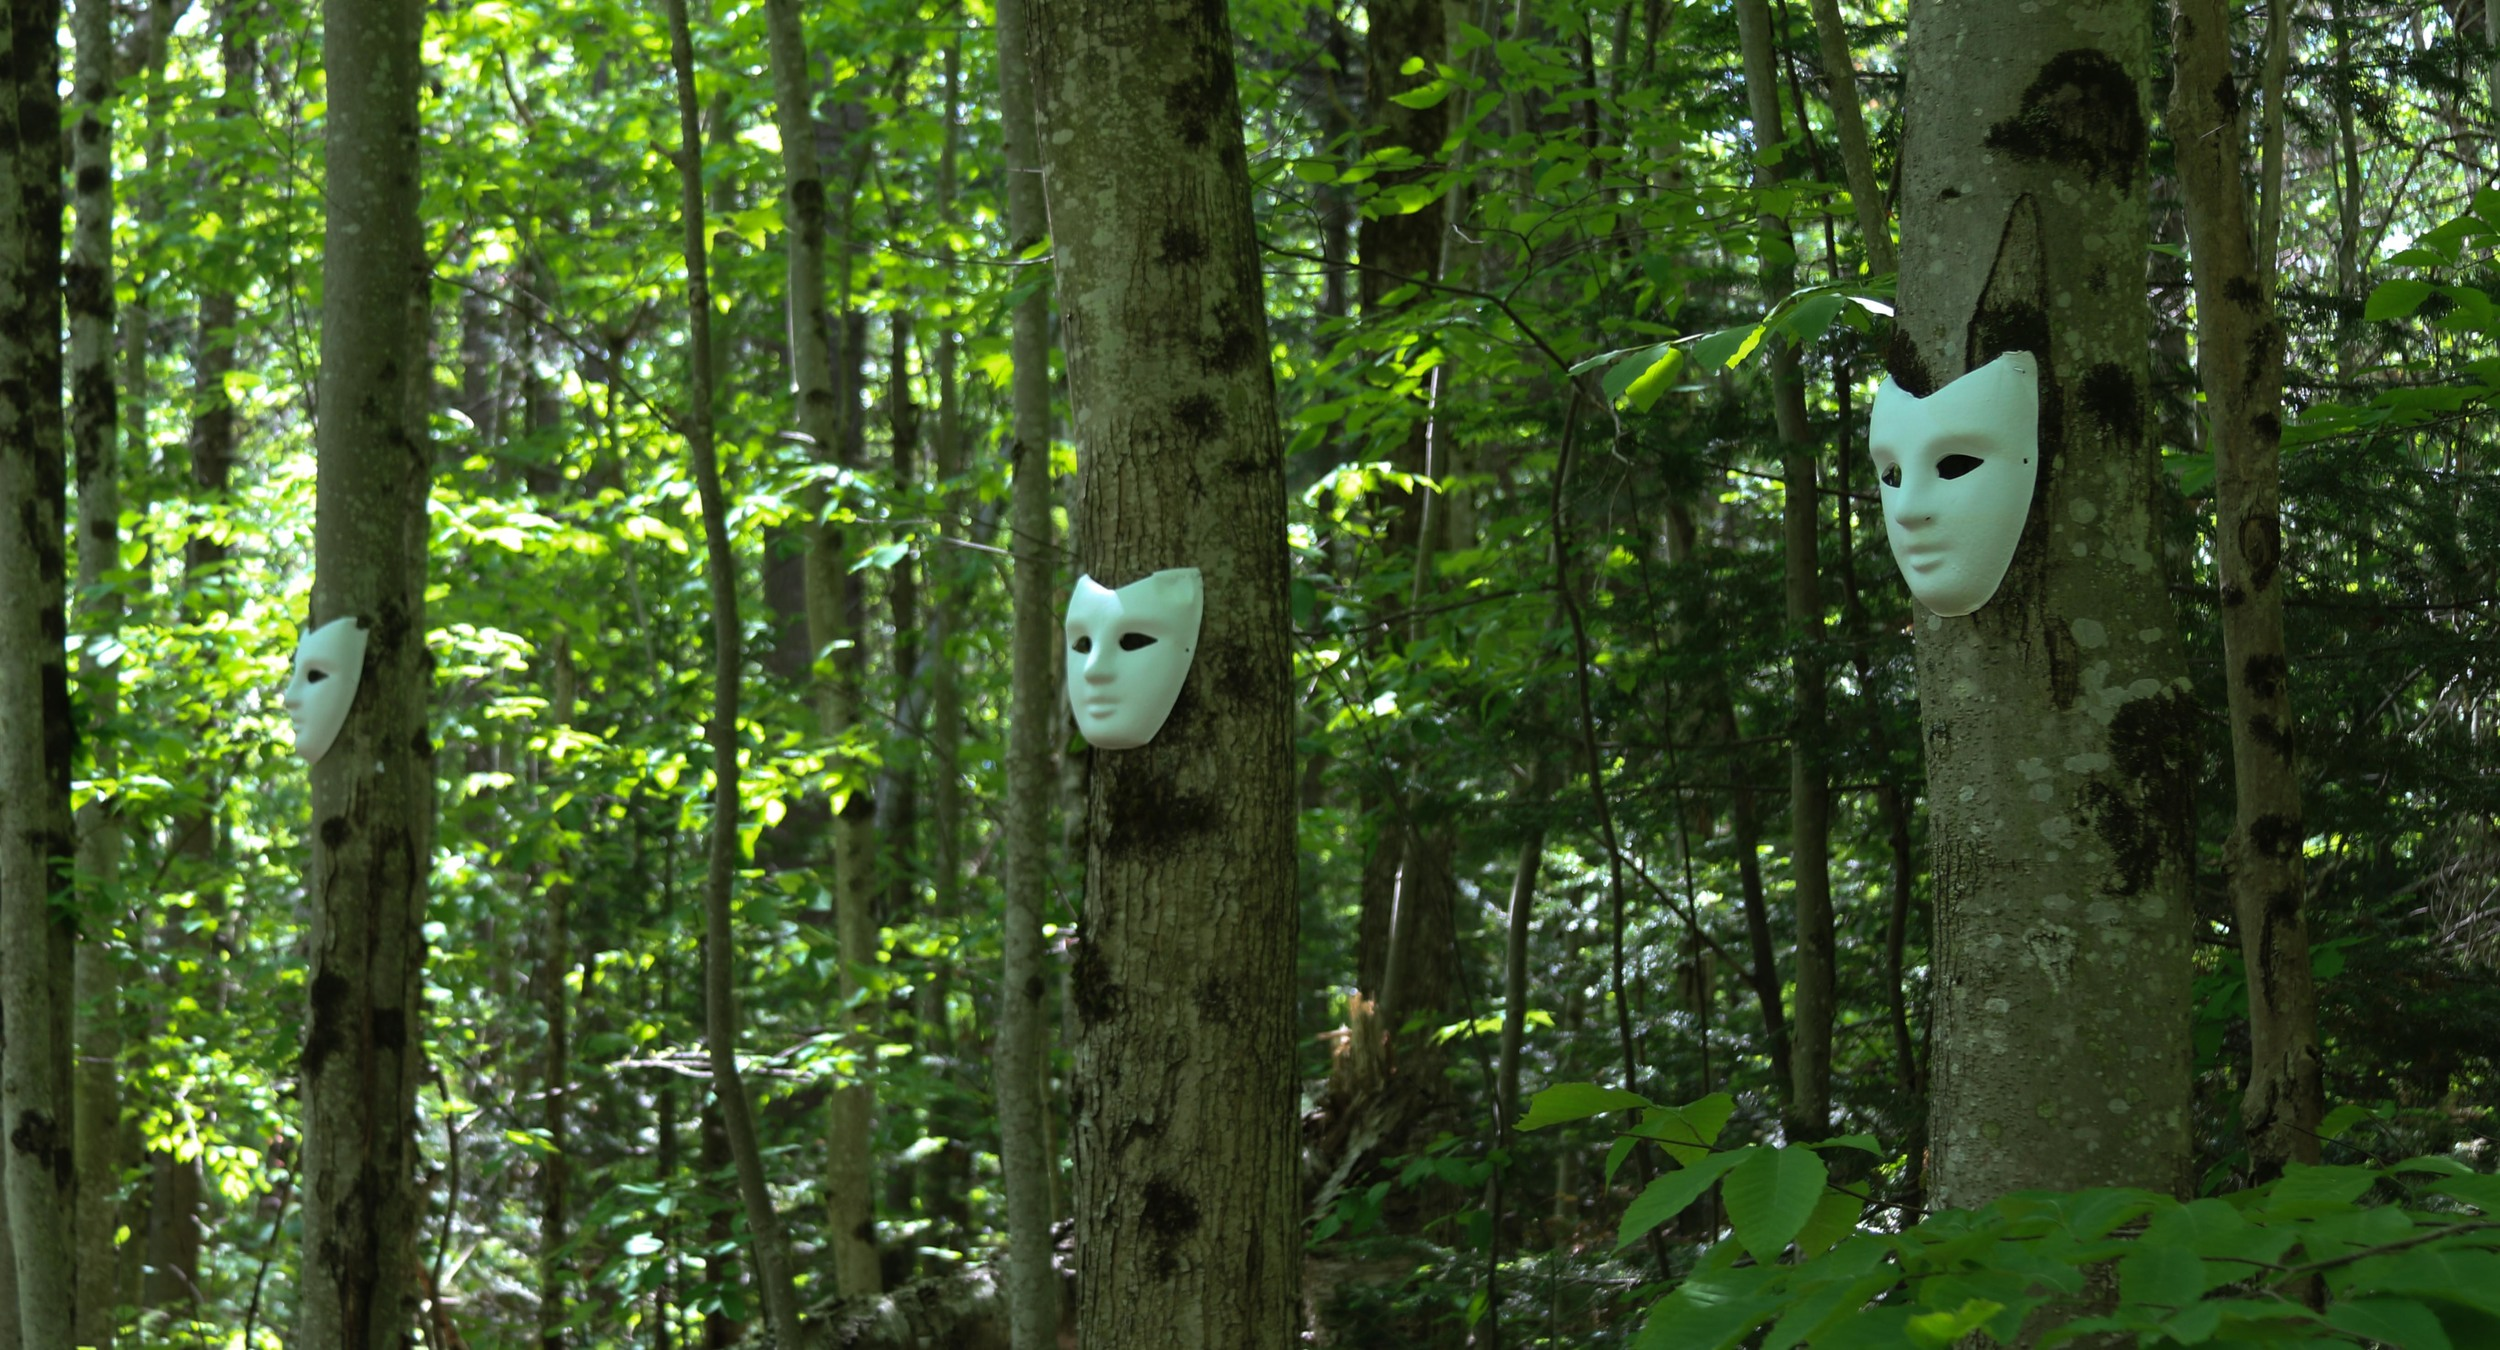 As the race went on, mysterious objects, always in a set of eight, appeared in the woods.